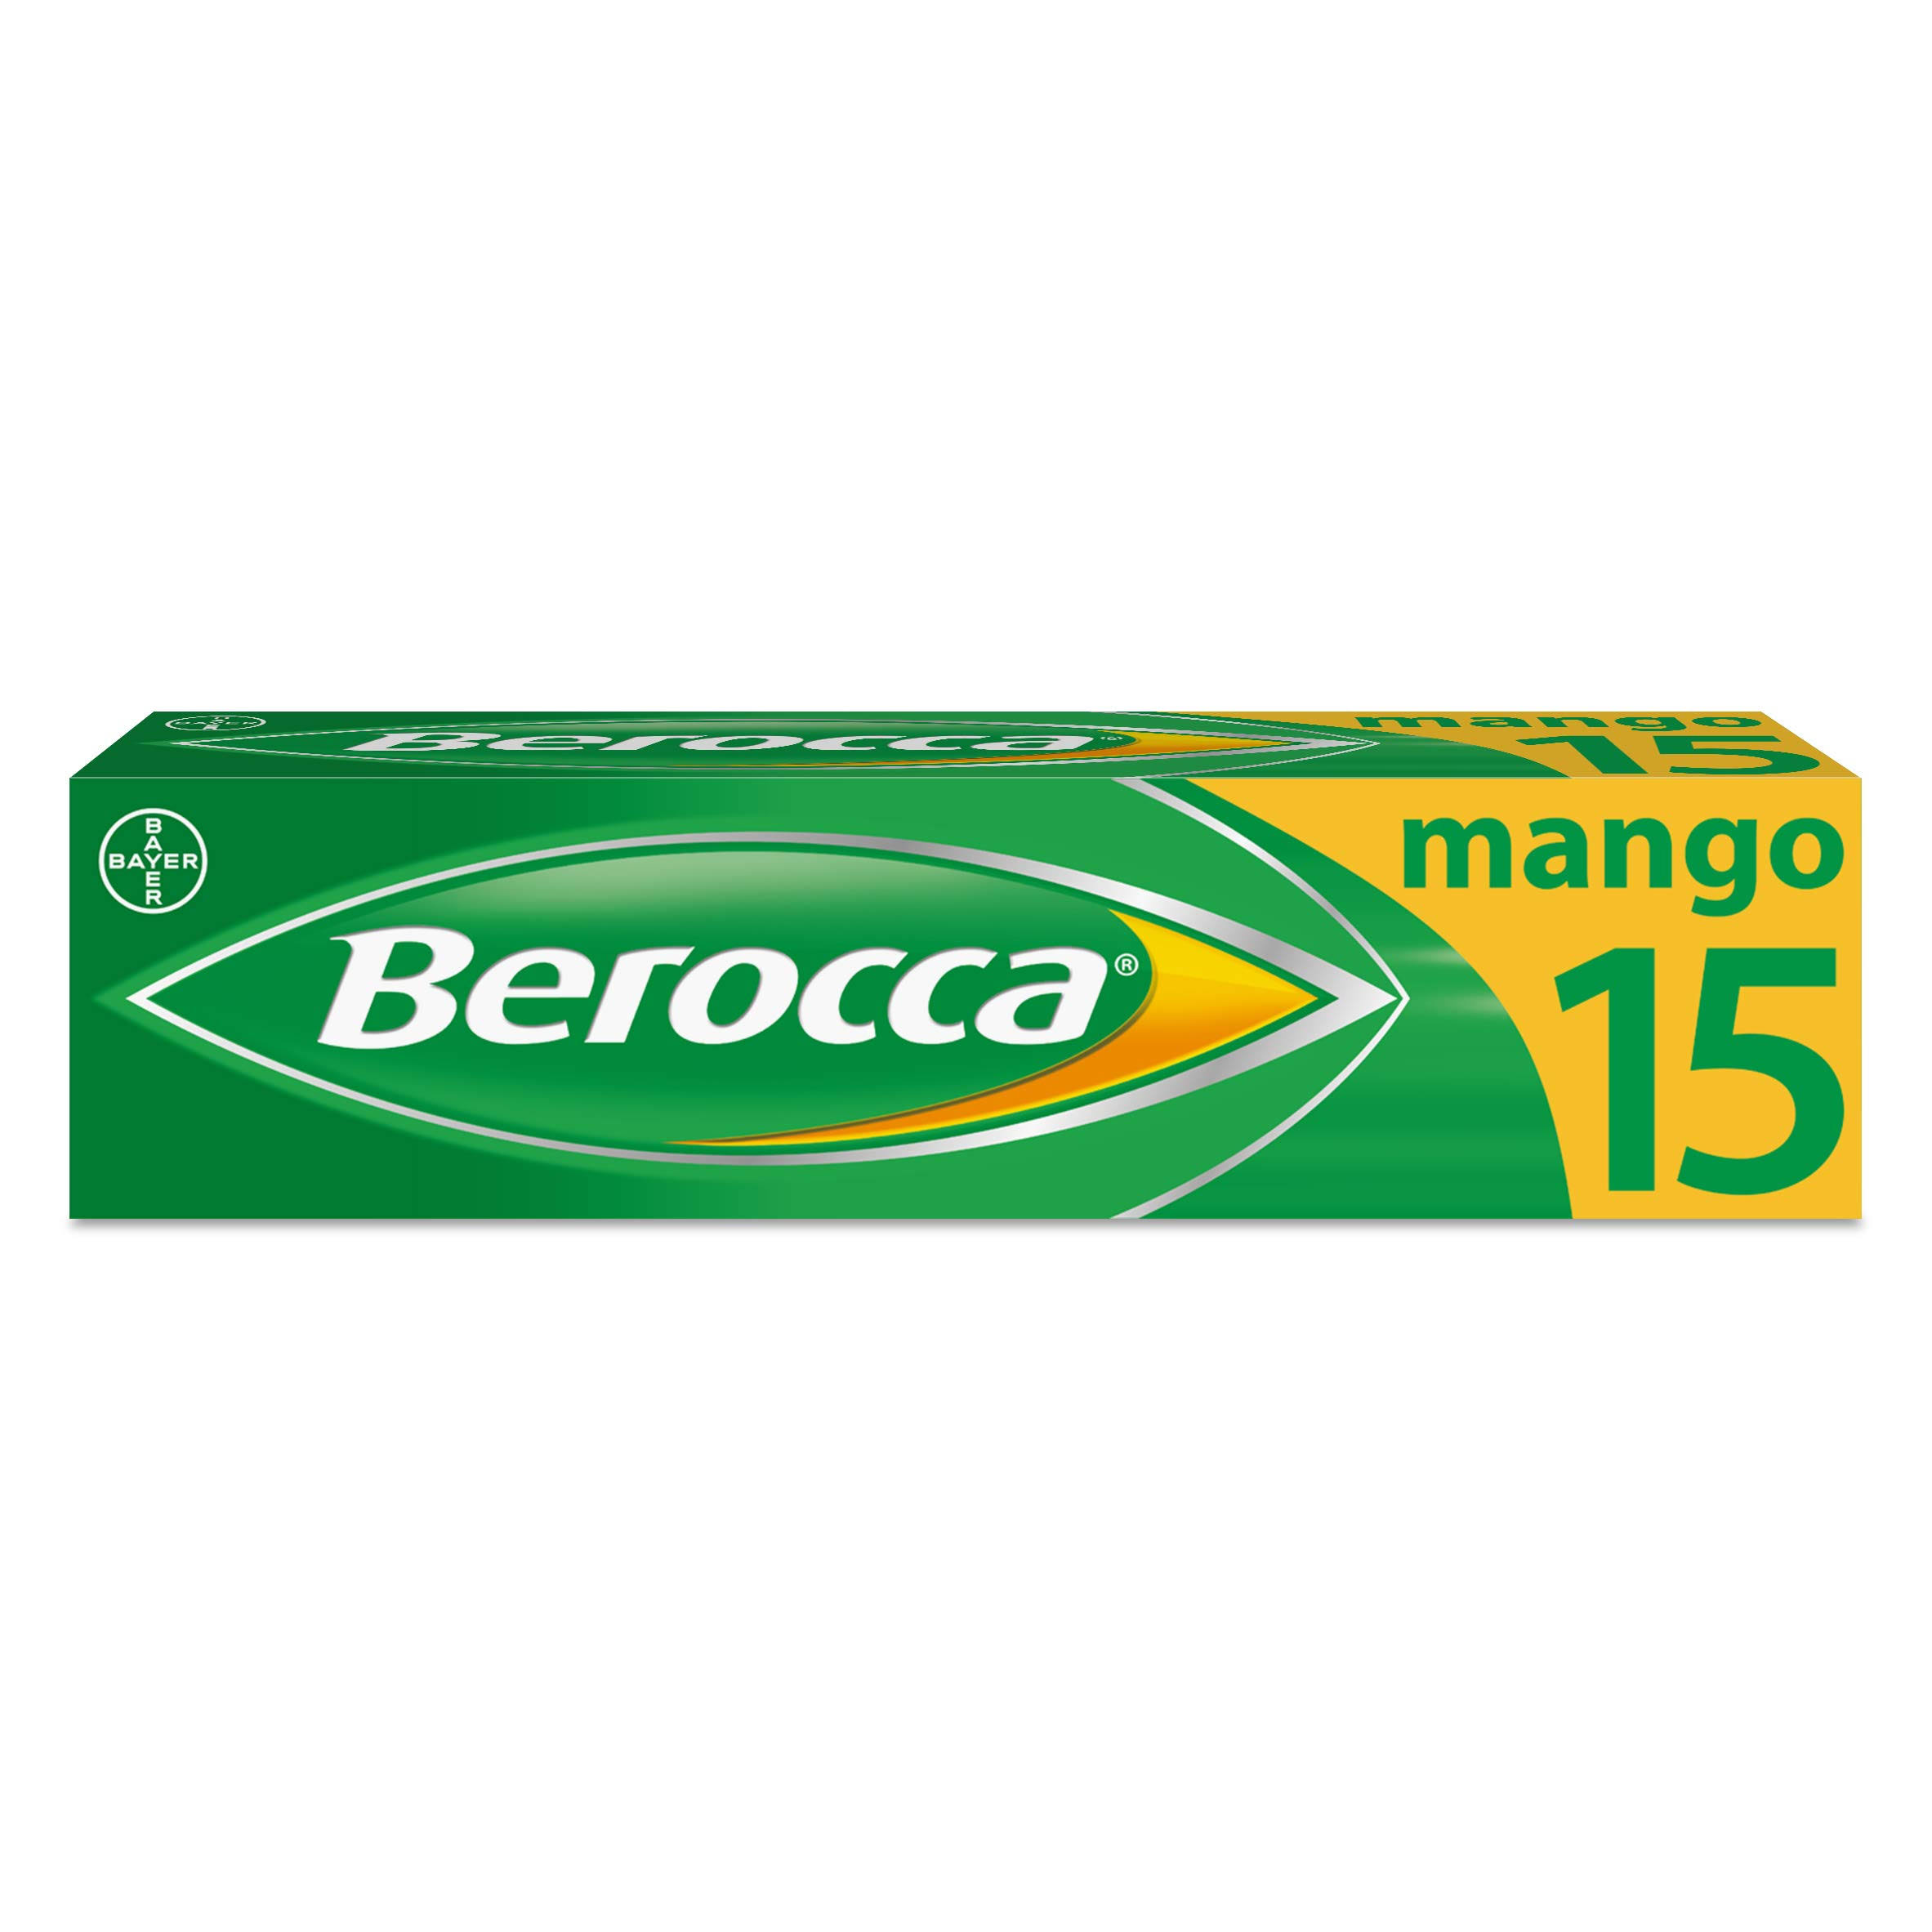 Berocca Effervescent Tablets - Mango, 15 Pack